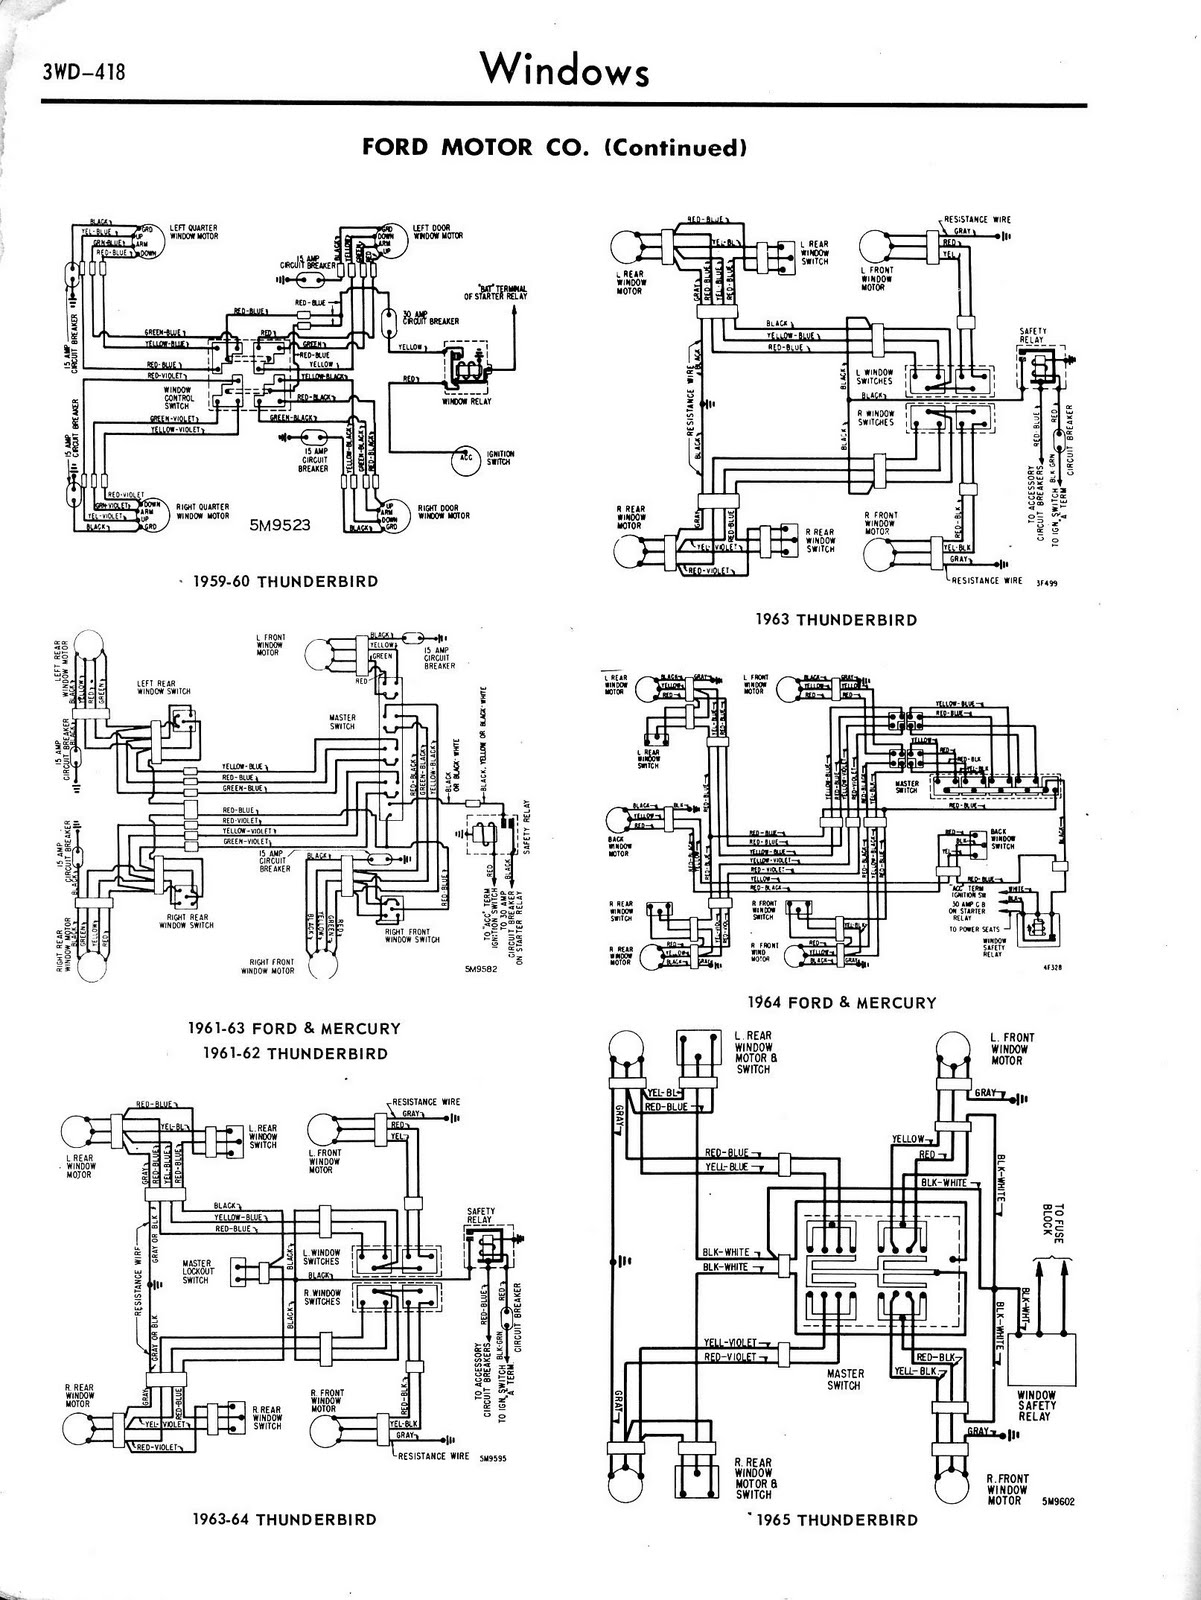 88 Thunderbird Fuse Box Easy Wiring Diagrams \u2022 Thunderbird Concepts  Accessories 88 Thunderbird Fuse Box